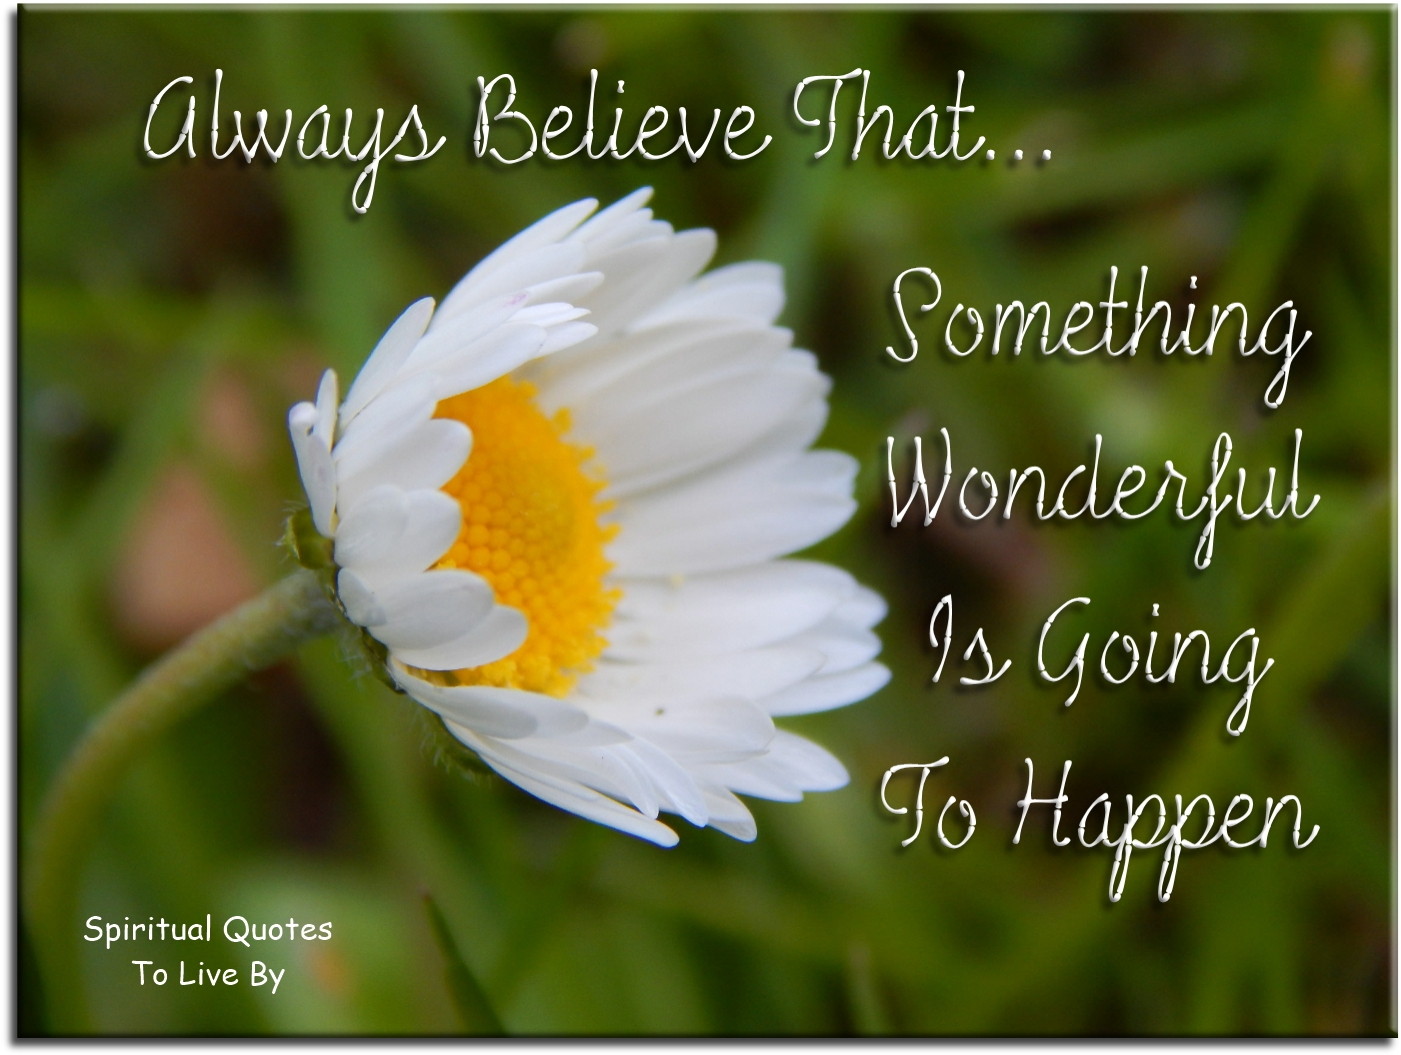 ALWAYS believe that something wonderful is going to happen. (unknown) - Spiritual Quotes To Live By